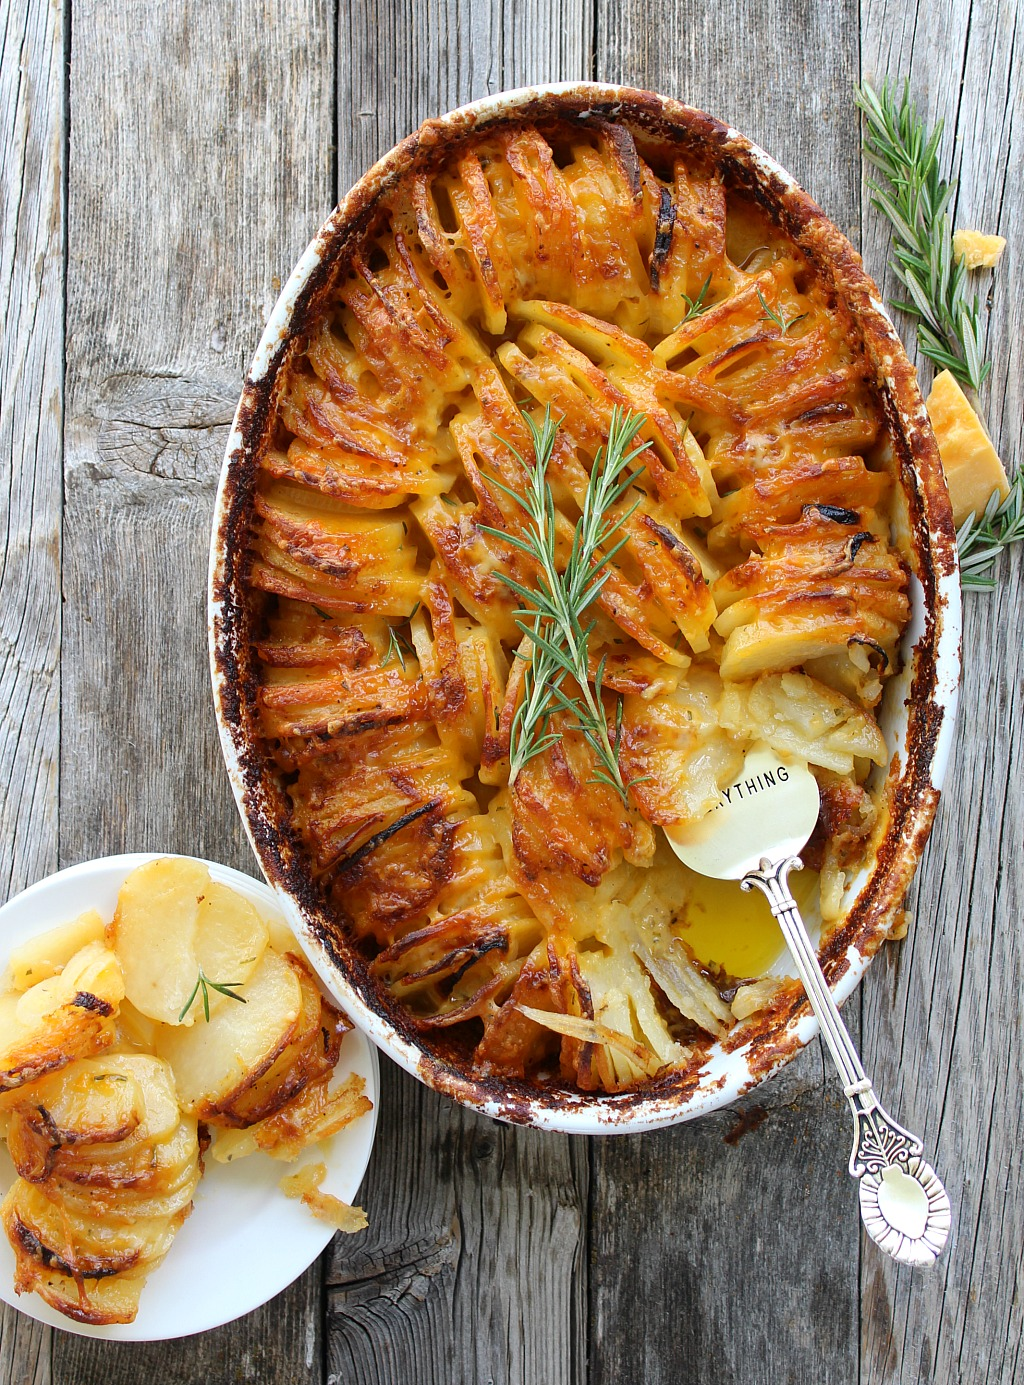 Scalloped potatoes, served Hasselback style are creamy and delicious. Cheddar and Pepper Jack with garlic and rosemary, perfectly soft yet crispy.